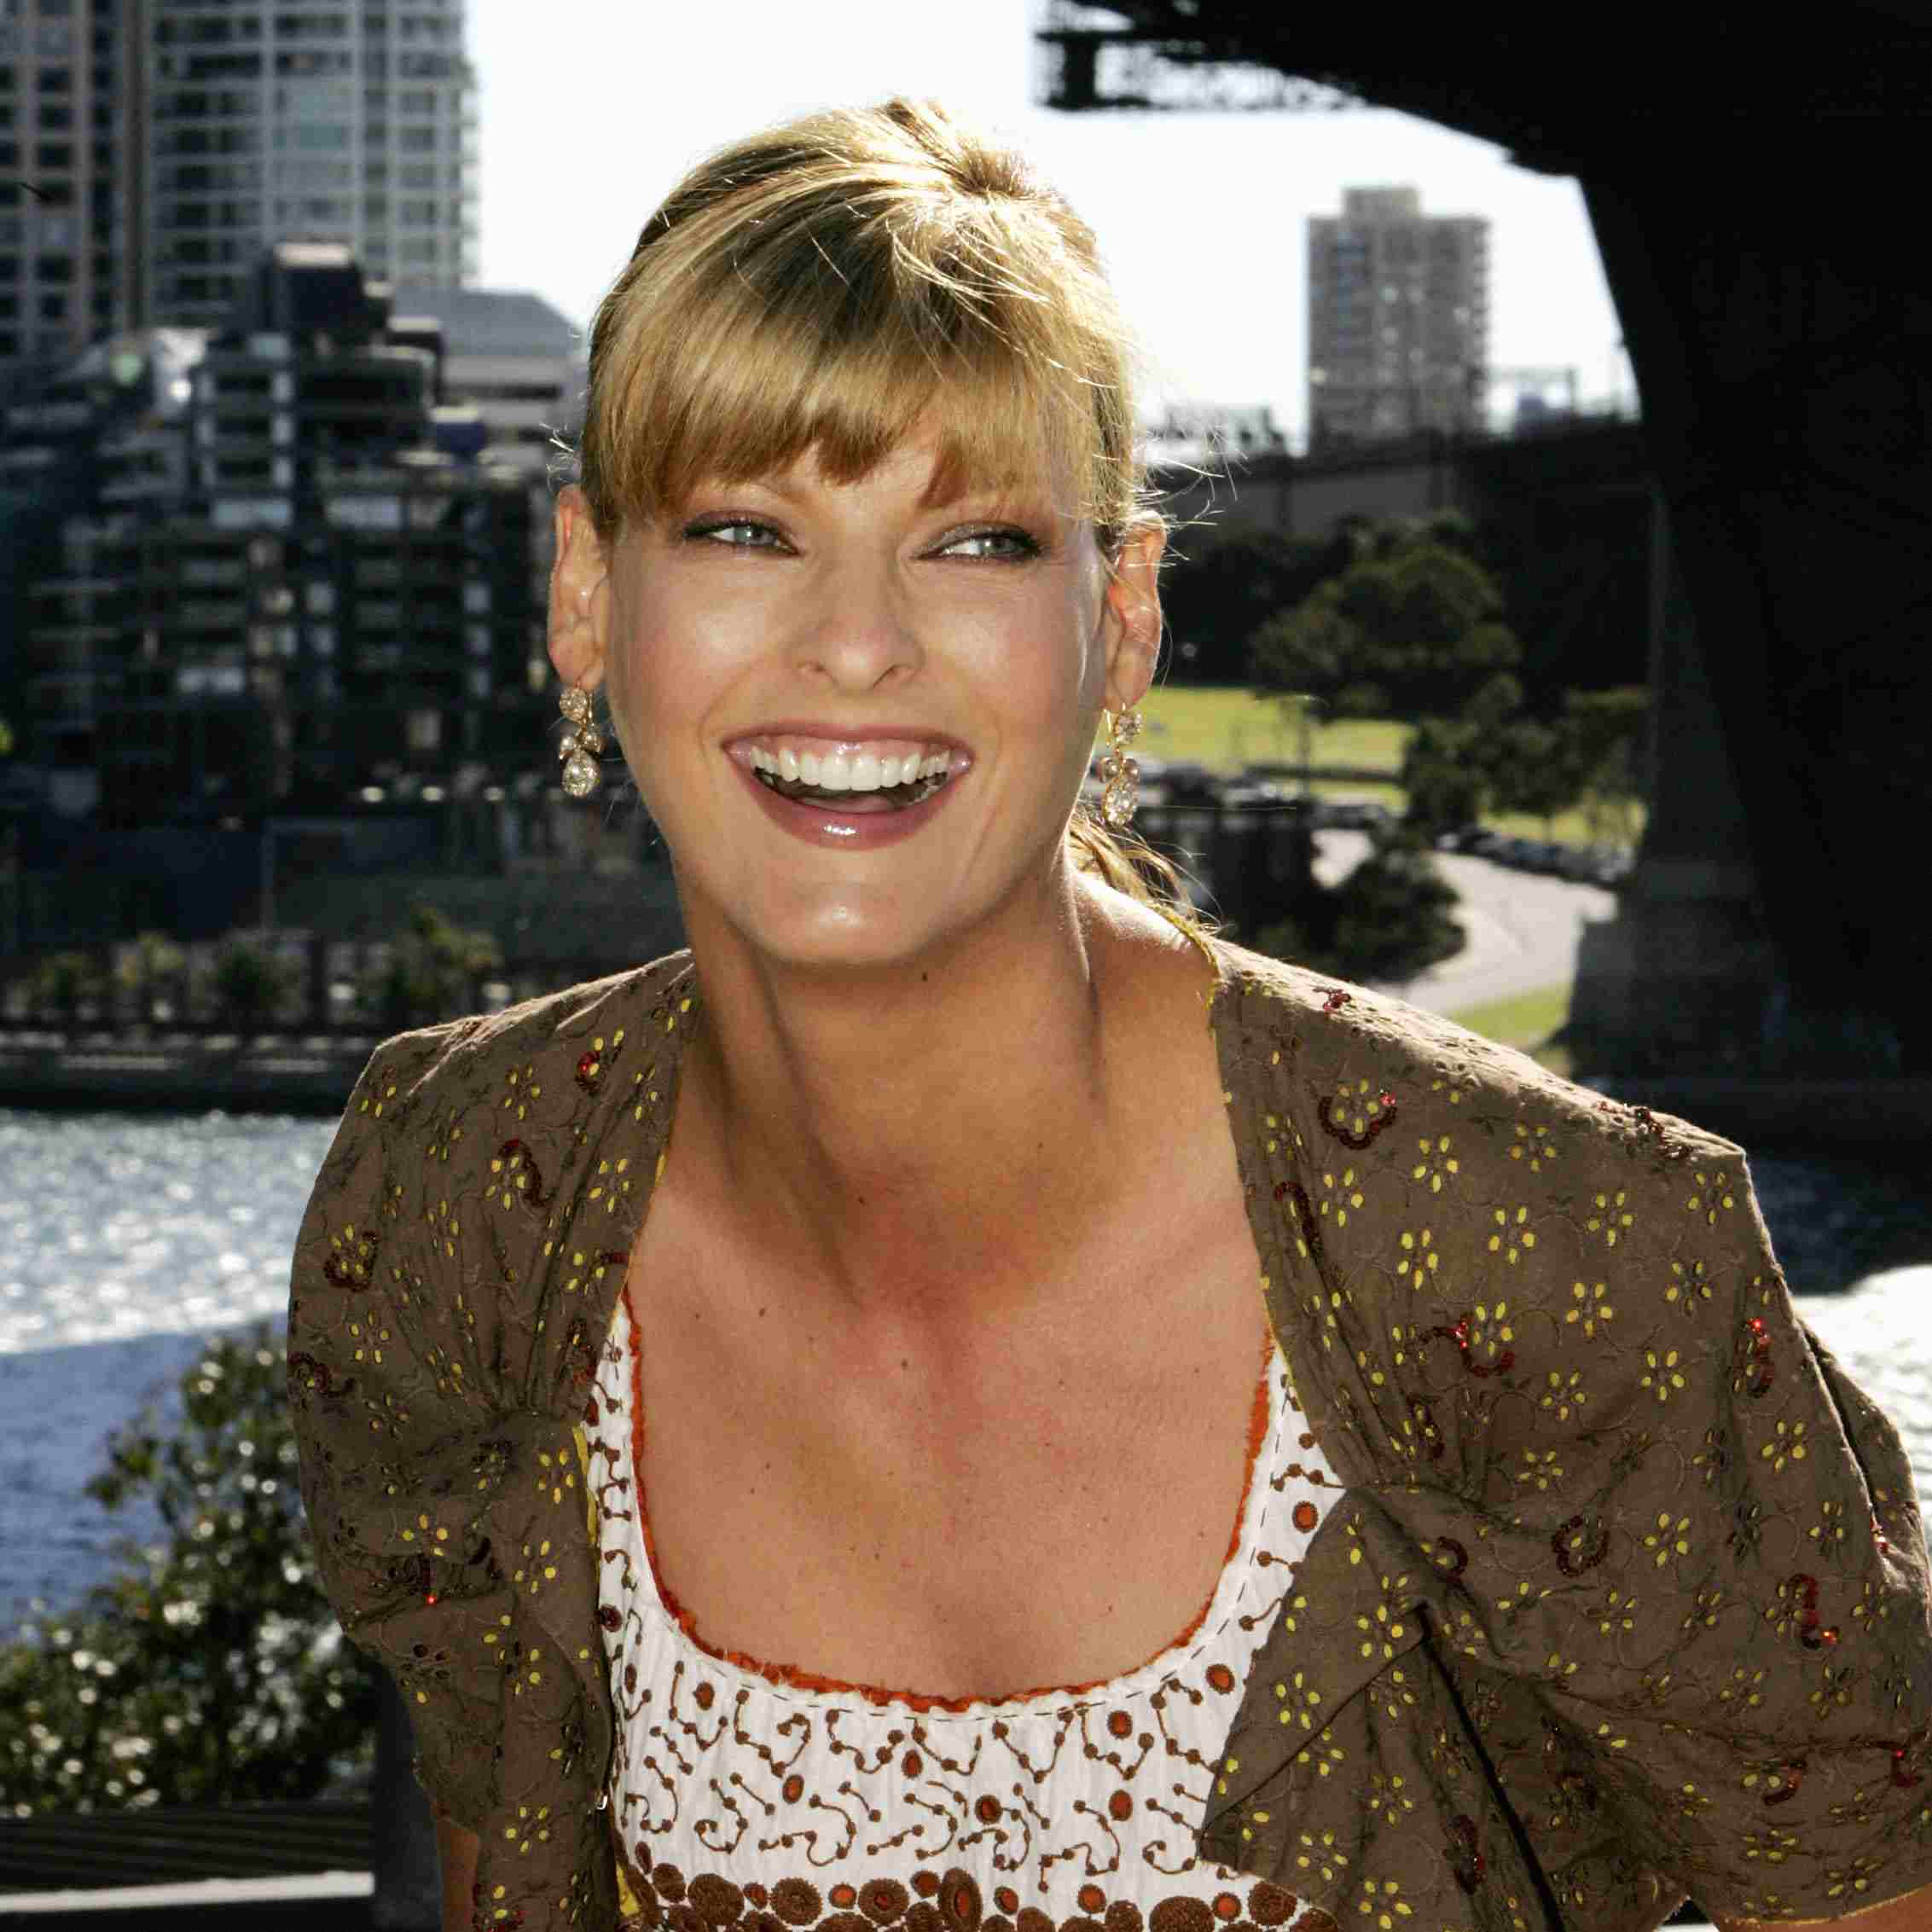 Supermodel Linda Evangelista at a press conference and photo call to welcome her as a special guest at the launch of David Jones Summer 2004 Collections at the Park Hyatt Hotel's Rooftop on August 9, 2004 in Sydney, Australia.